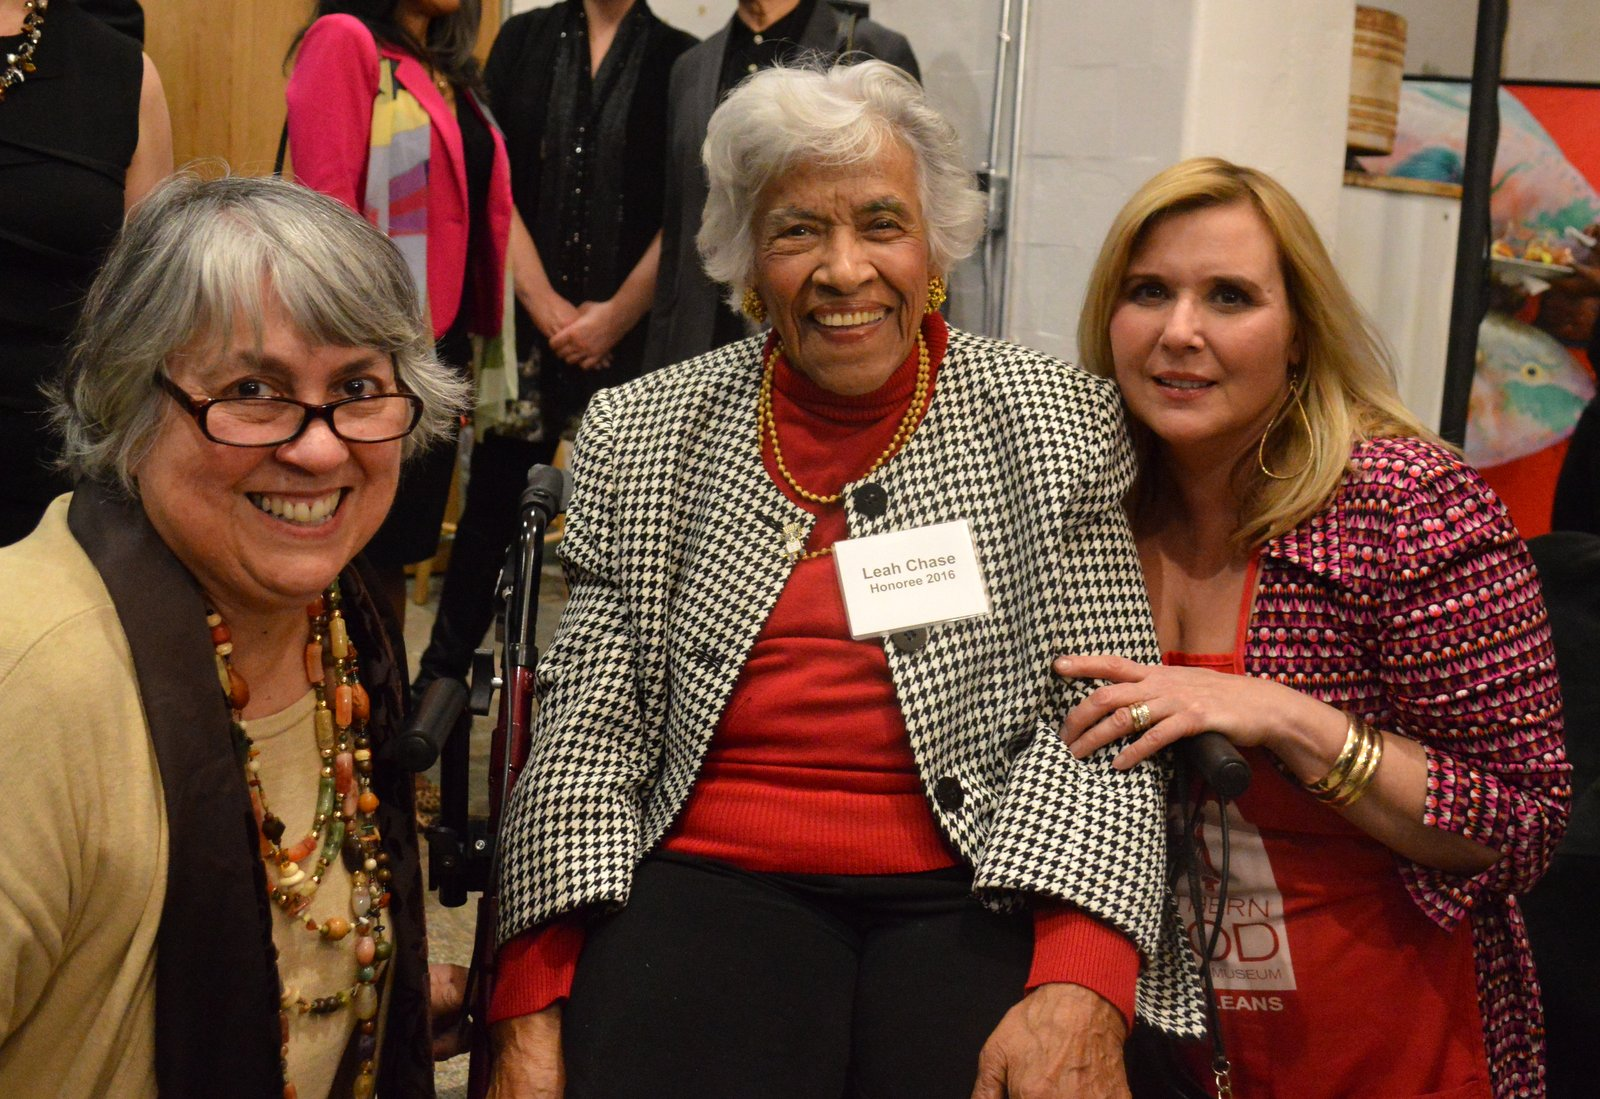 The legendary Chef Leah Chase with SoFAB Director Liz Williams and Director of Culinary Programming, Jyl Benson